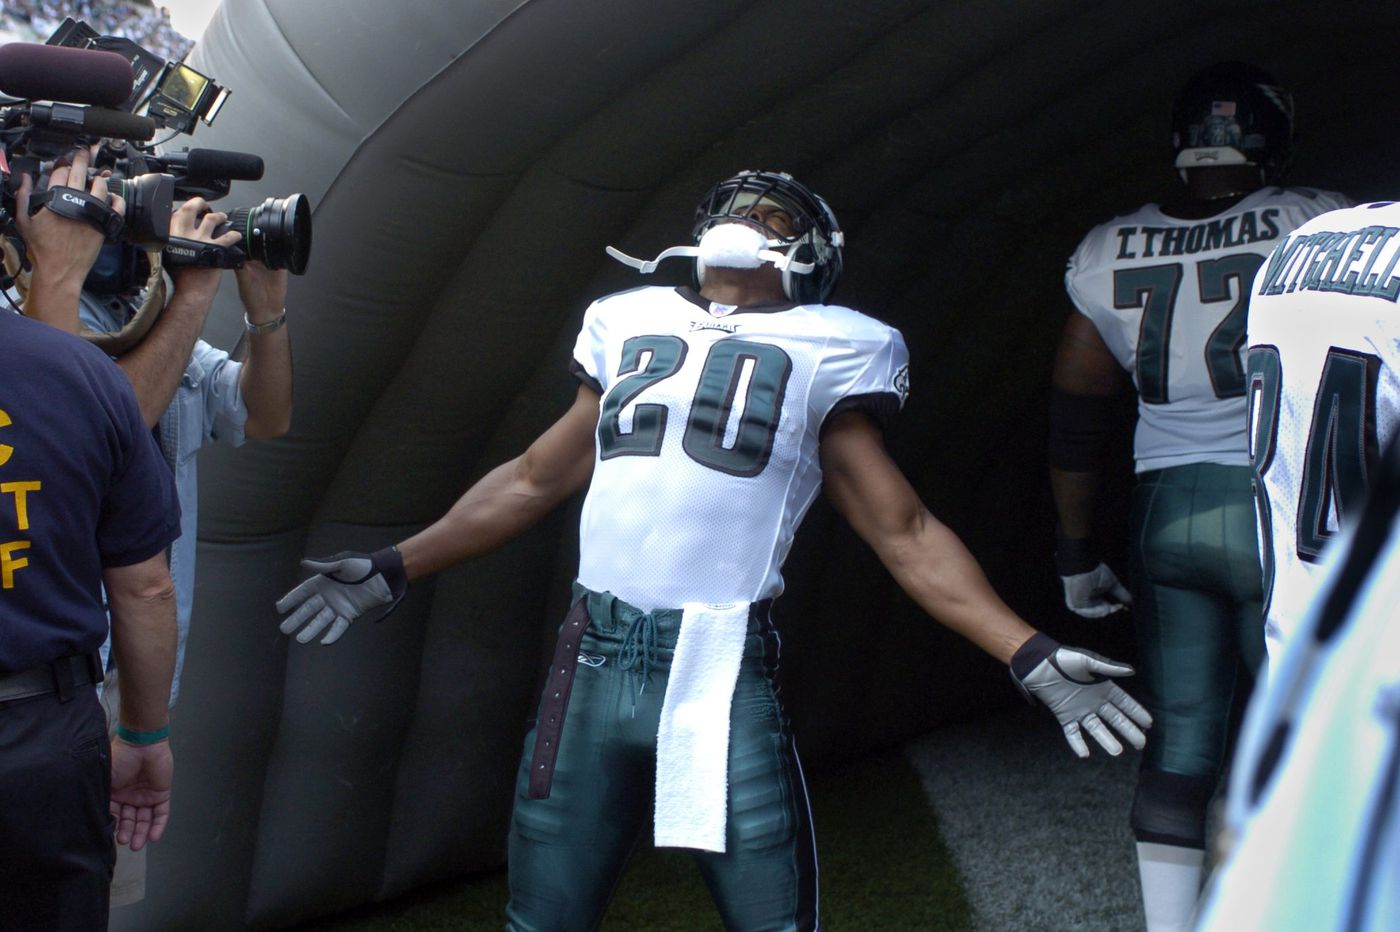 f43a789845f What you need to know about Brian Dawkins  Hall of Fame induction